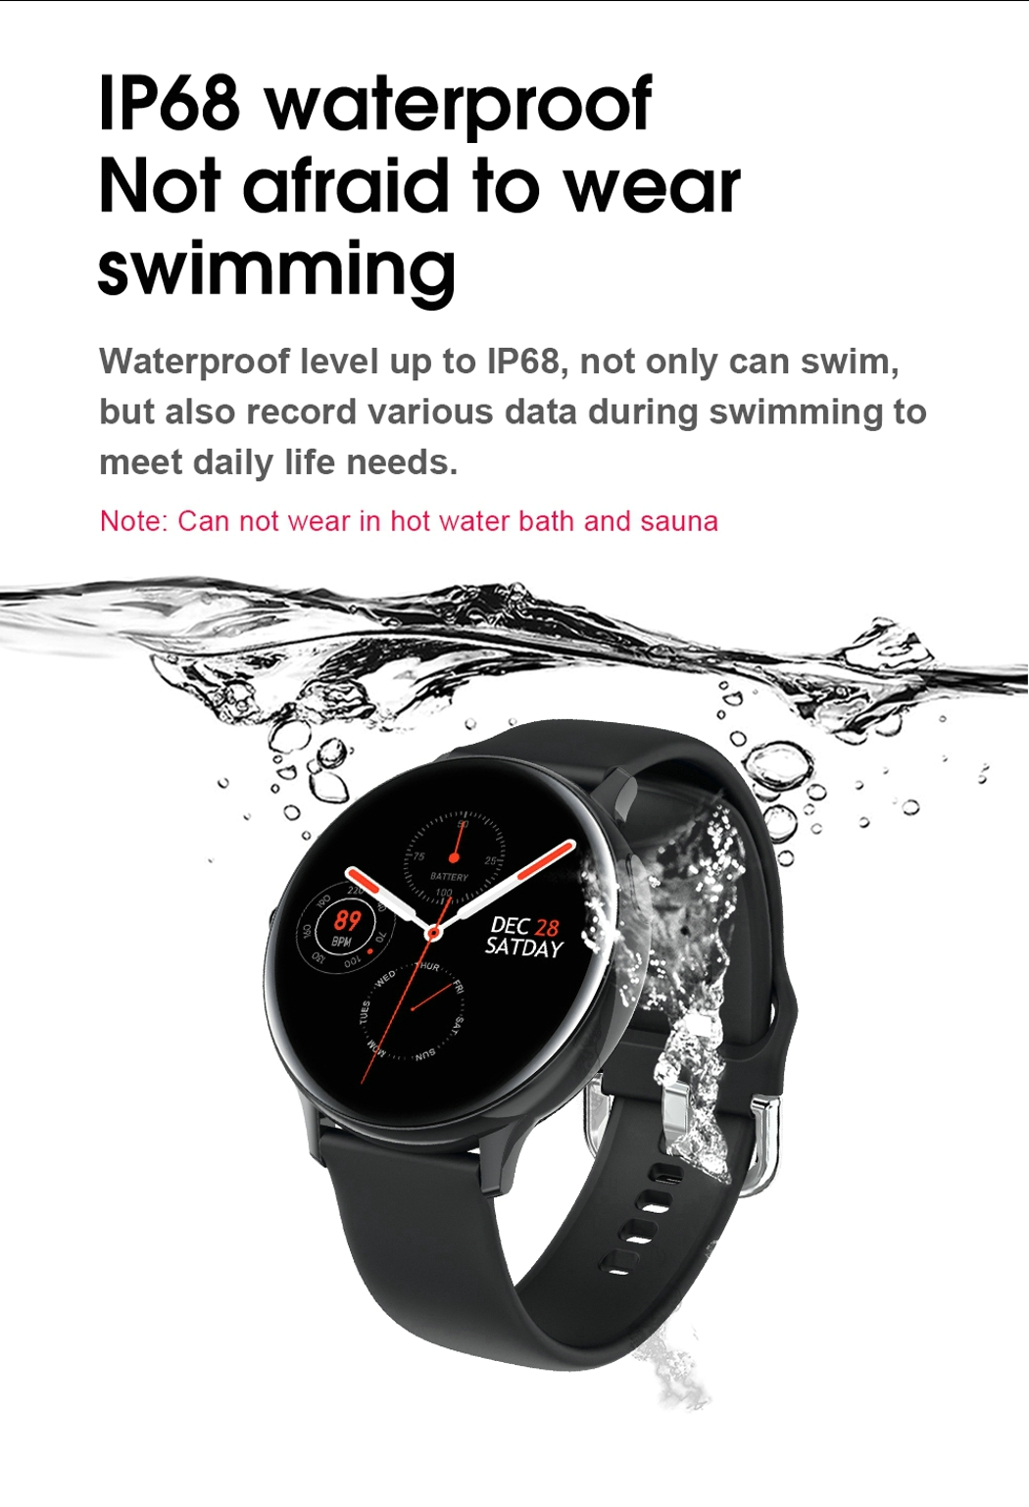 LEMFO Smart Watch Men IP68 Waterproof Heart Rate Blood Pressure Monitor  Smartwatch Women 2020 Changeable Watch Face for Android